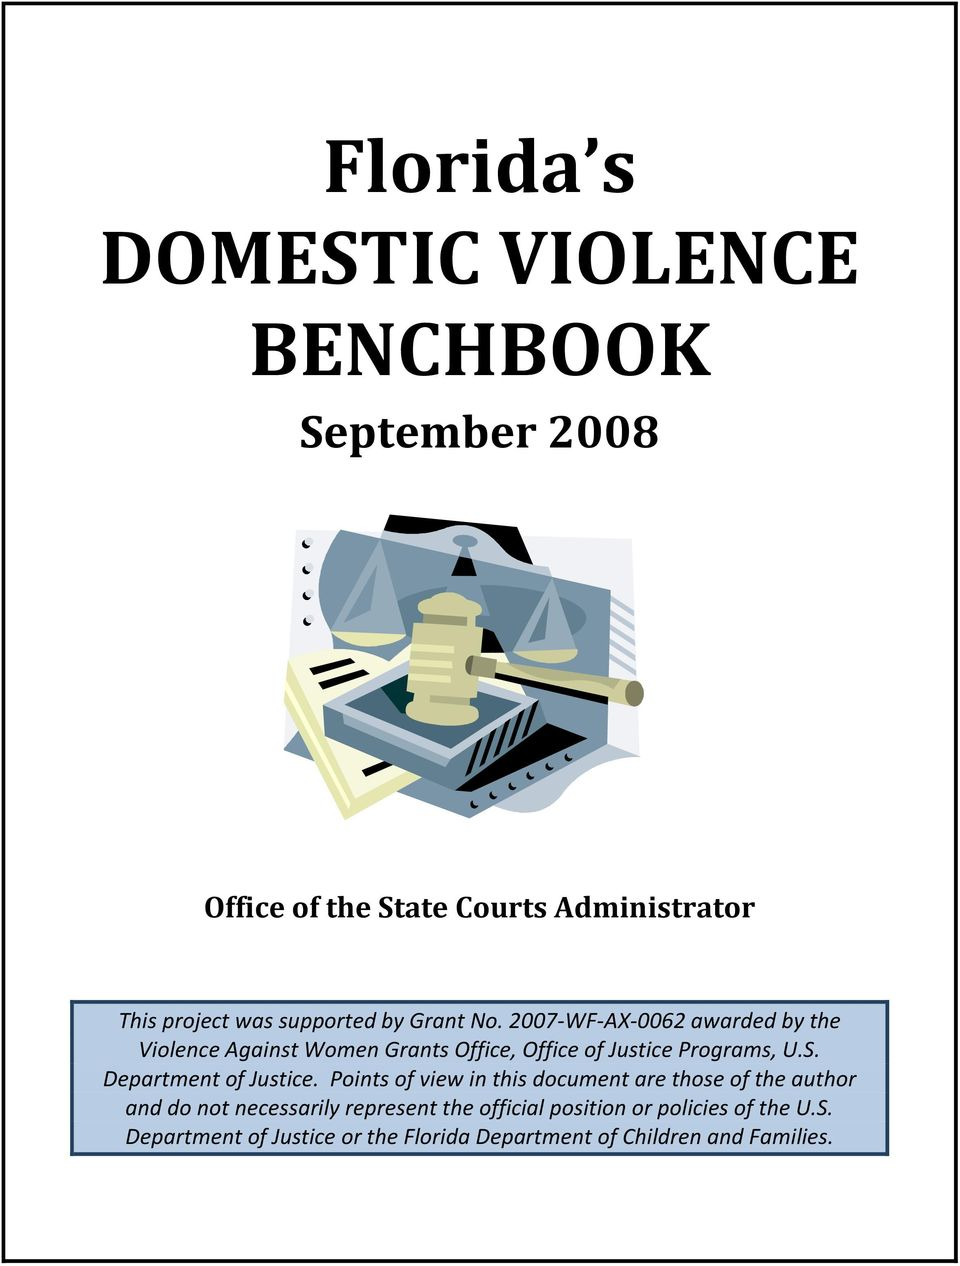 2007-WF-AX-0062 awarded by the Violence Against Women Grants Office, Office of Justice Programs, U.S.